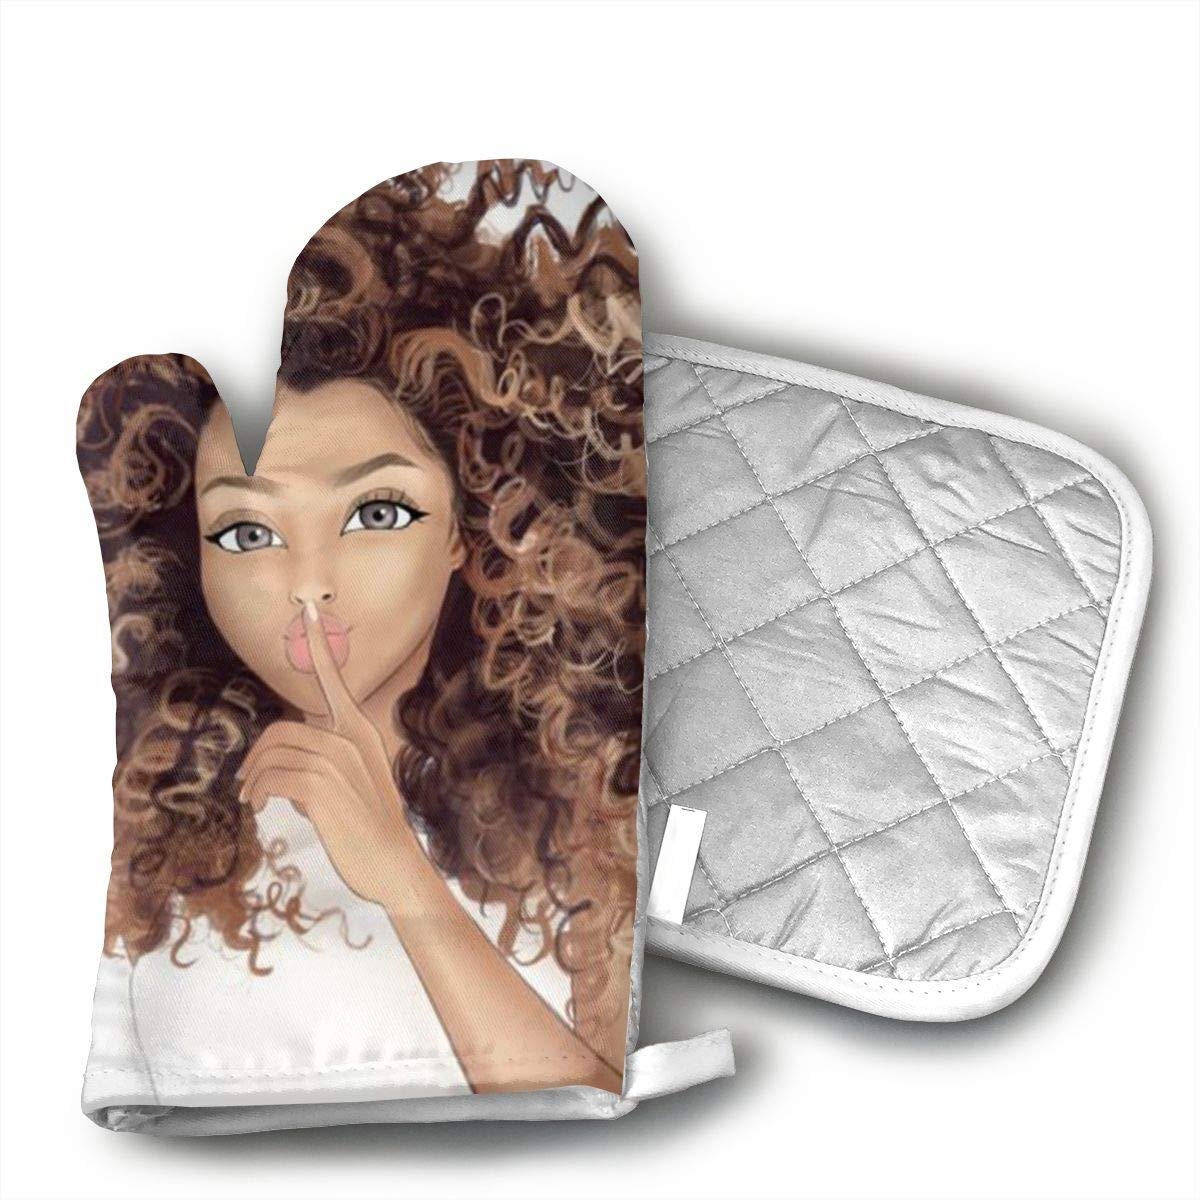 HGUIDHG African American Women Girl White T-Shirt Oven Mitts+Insulated Square Mat,Heat Resistant Kitchen Gloves Soft Insulated Deep Pockets, Non-Slip Handles